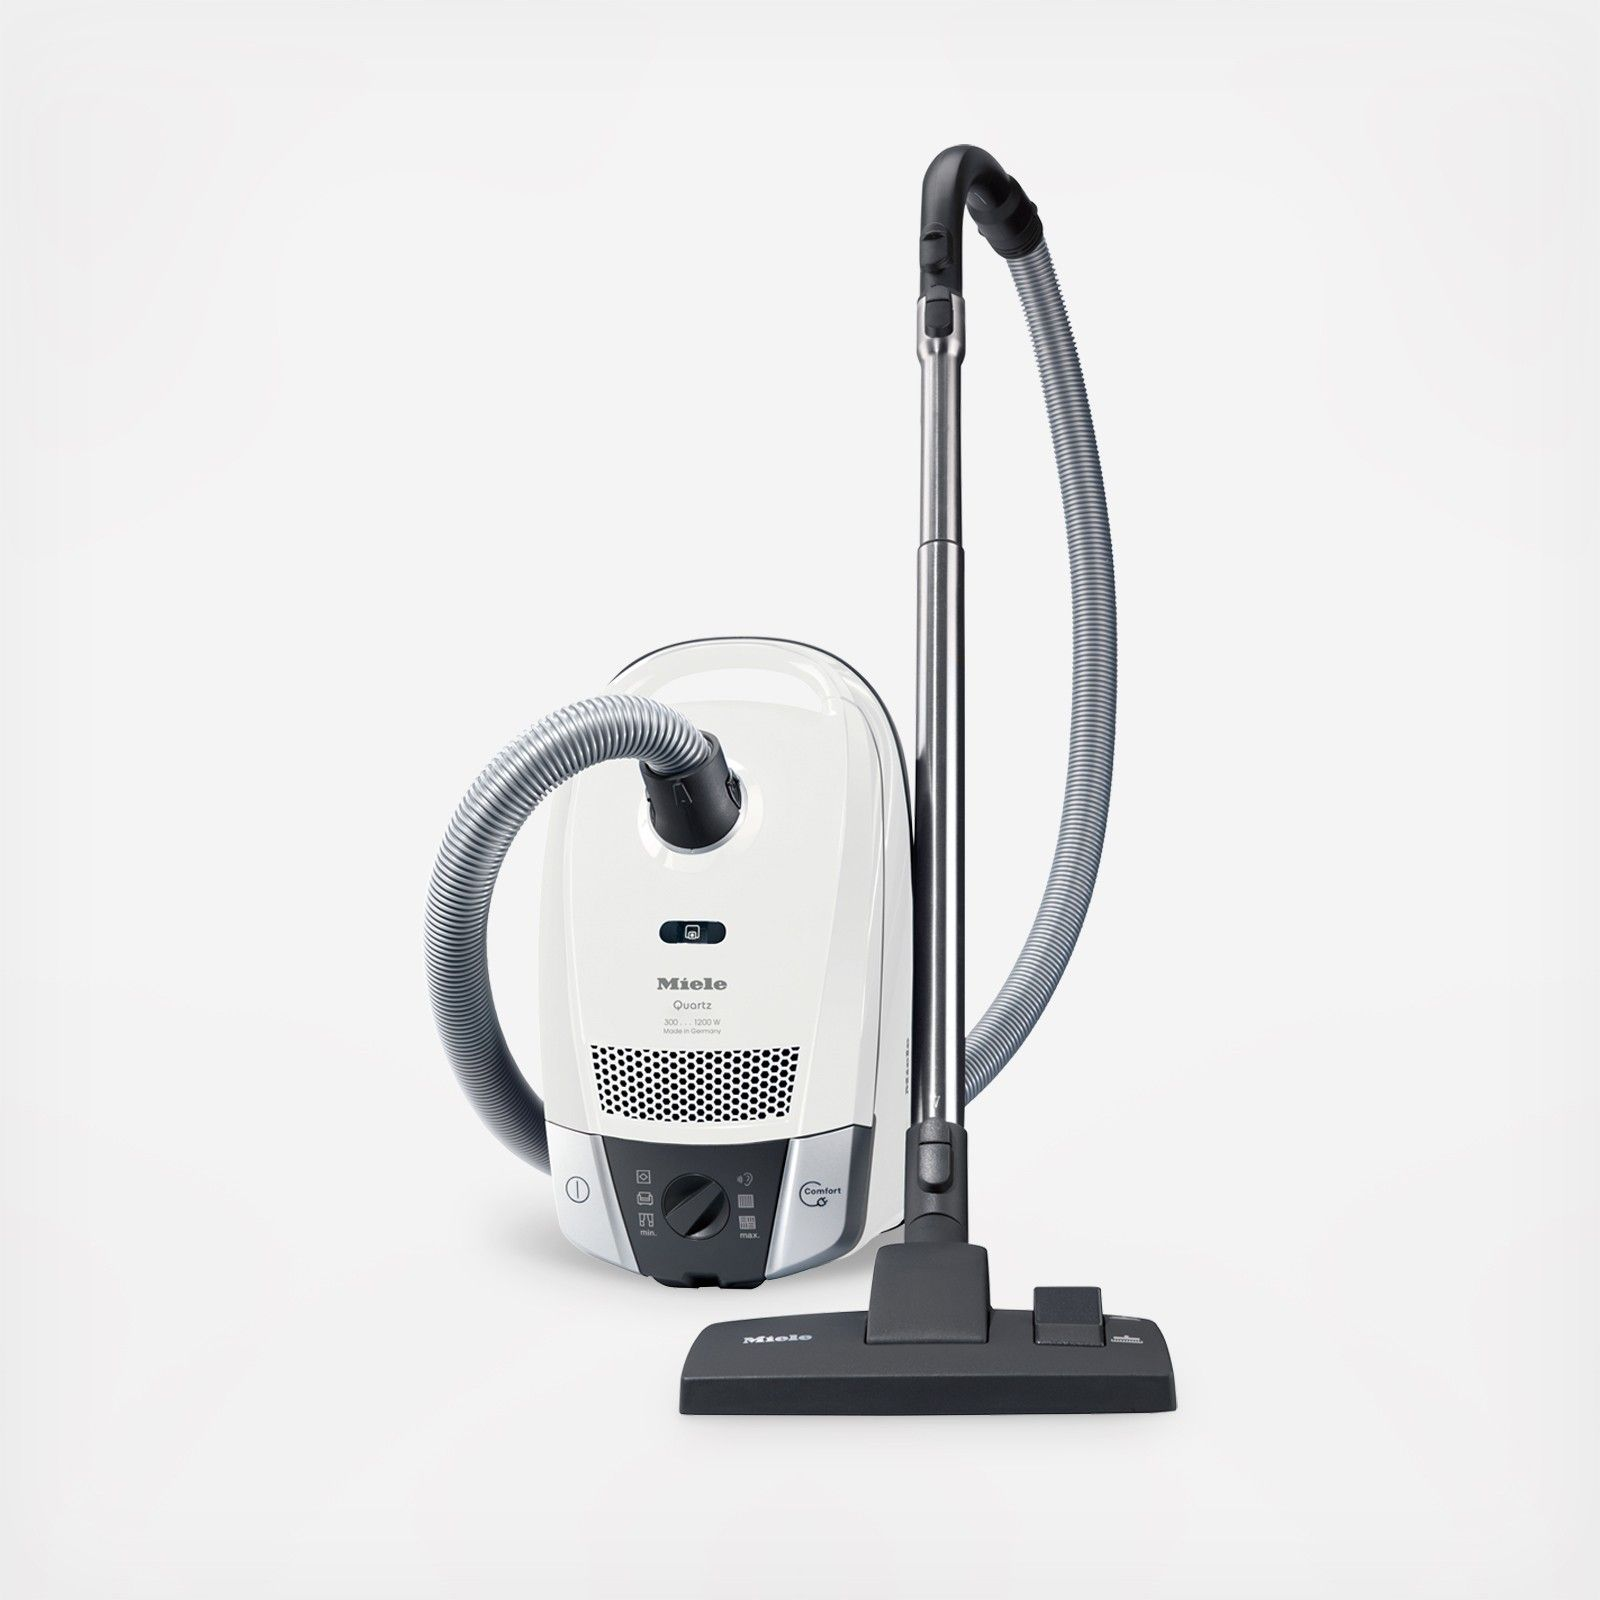 Miele S Lightweight Ultraquiet Compact C2 Quartz Canister Vacuum Features An Allteq Combination Floor Canister Vacuum Microfiber Cleaner Vacuum Cleaner Brands